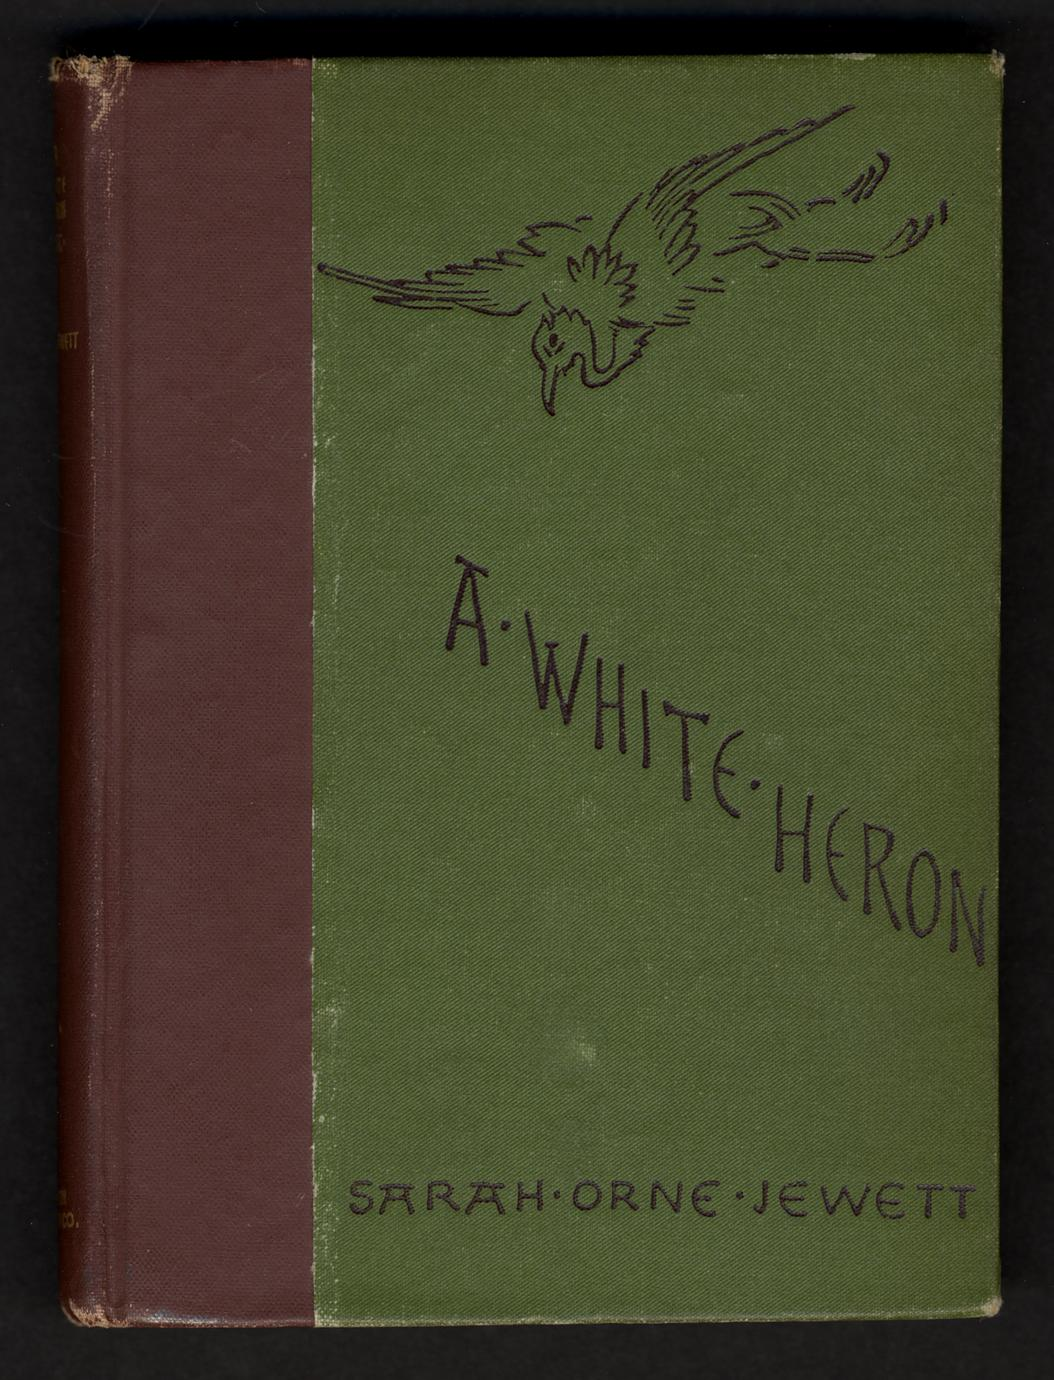 A white heron and other stories (1 of 2)